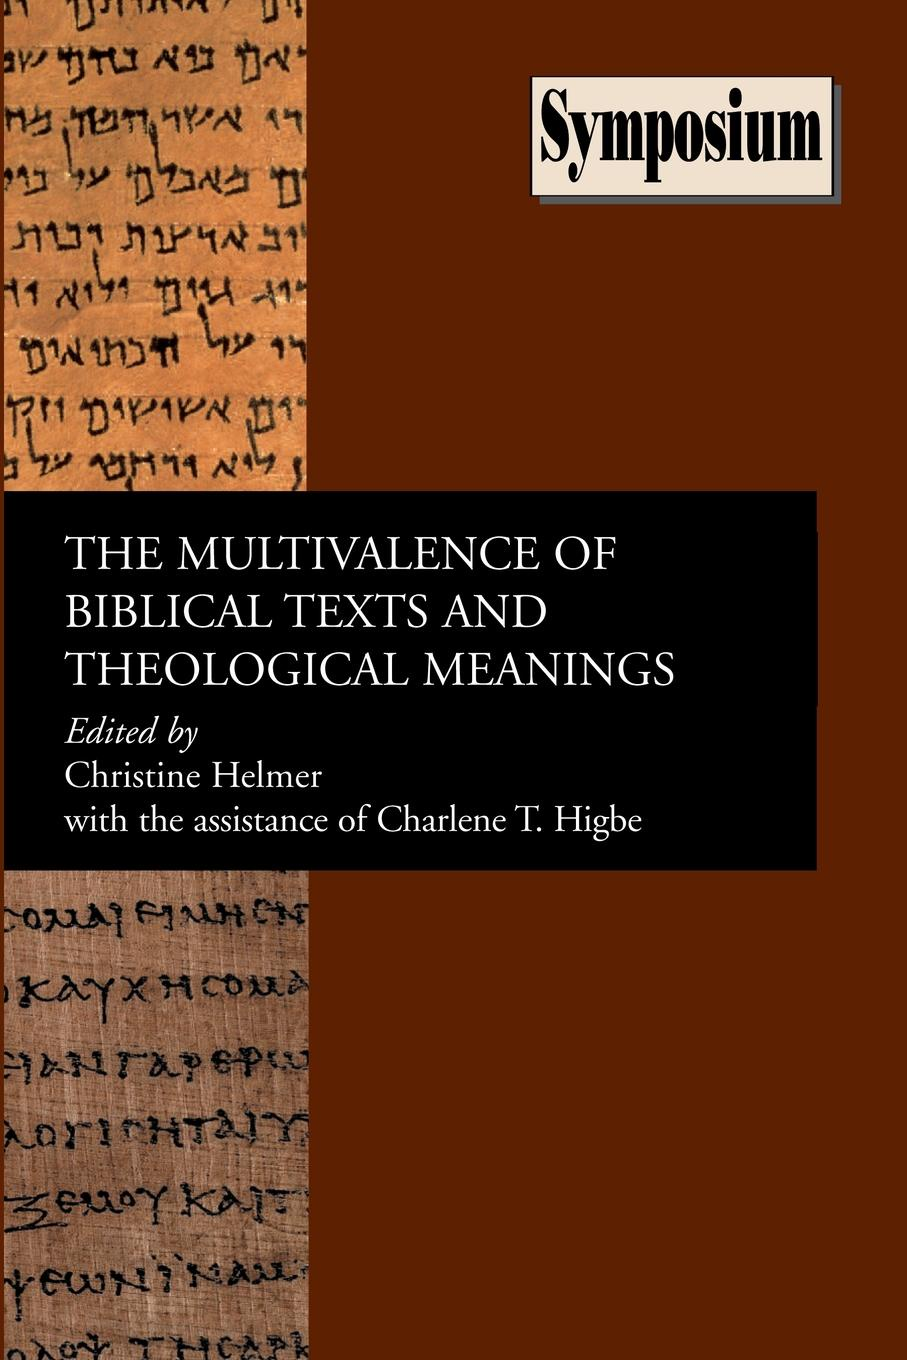 The Multivalence of Biblical Texts and Theological Meanings